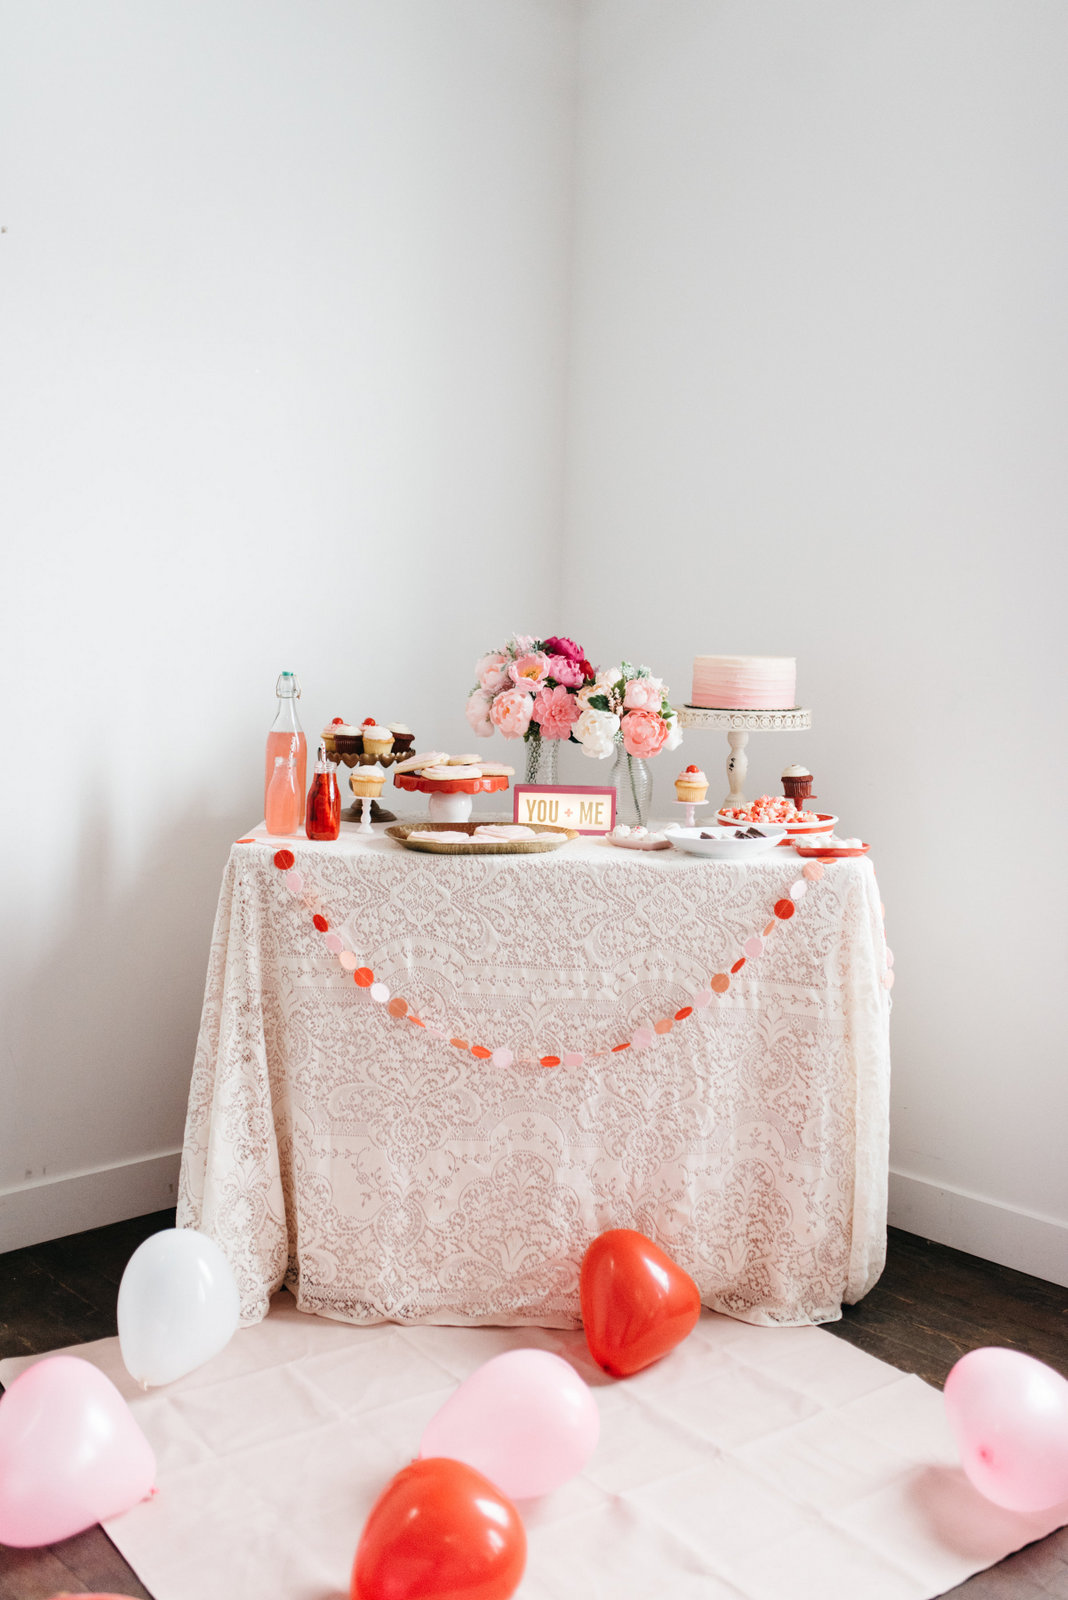 Family Valentine's Day Ideas: Valentine's Day Dessert Table